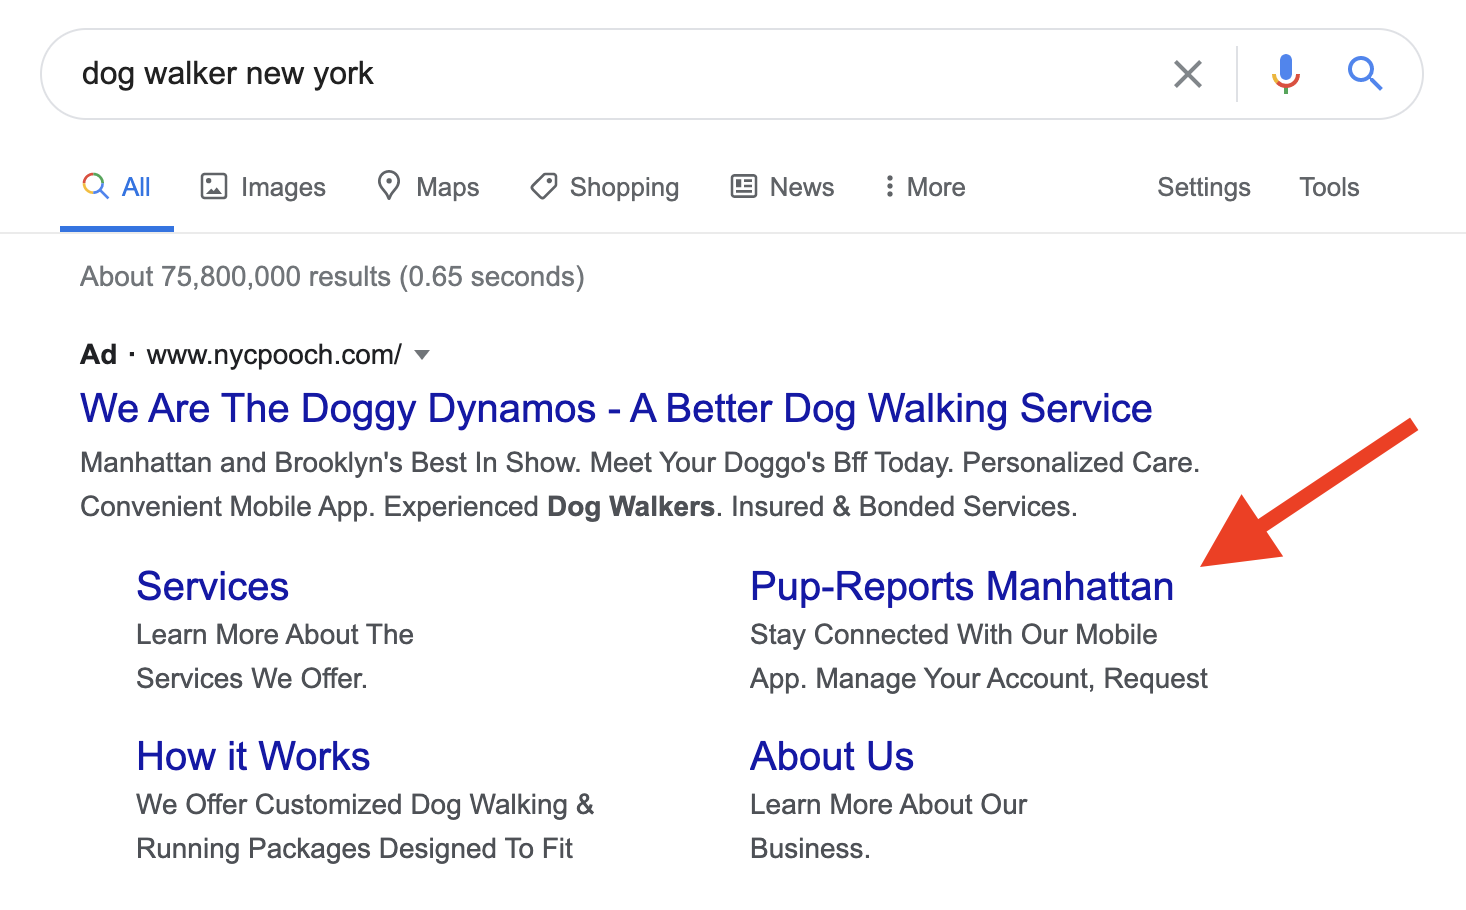 Dog walker new york search results in Google.